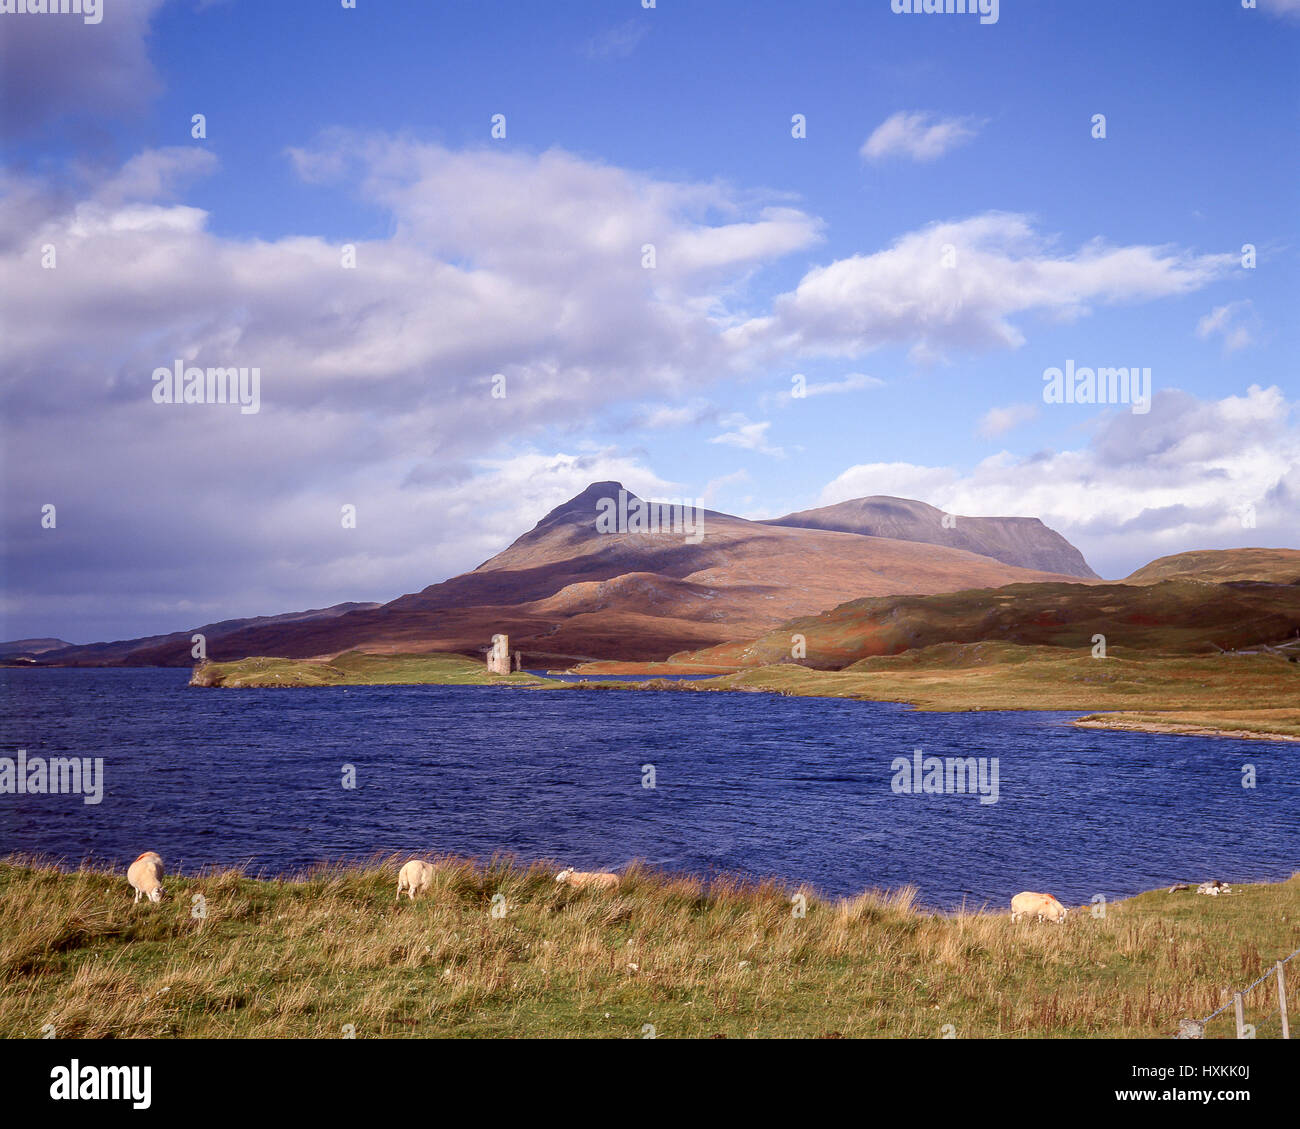 Loch Assynt showing Ardvreck Castle, Sutherland County, Highland, Scotland, United Kingdom - Stock Image